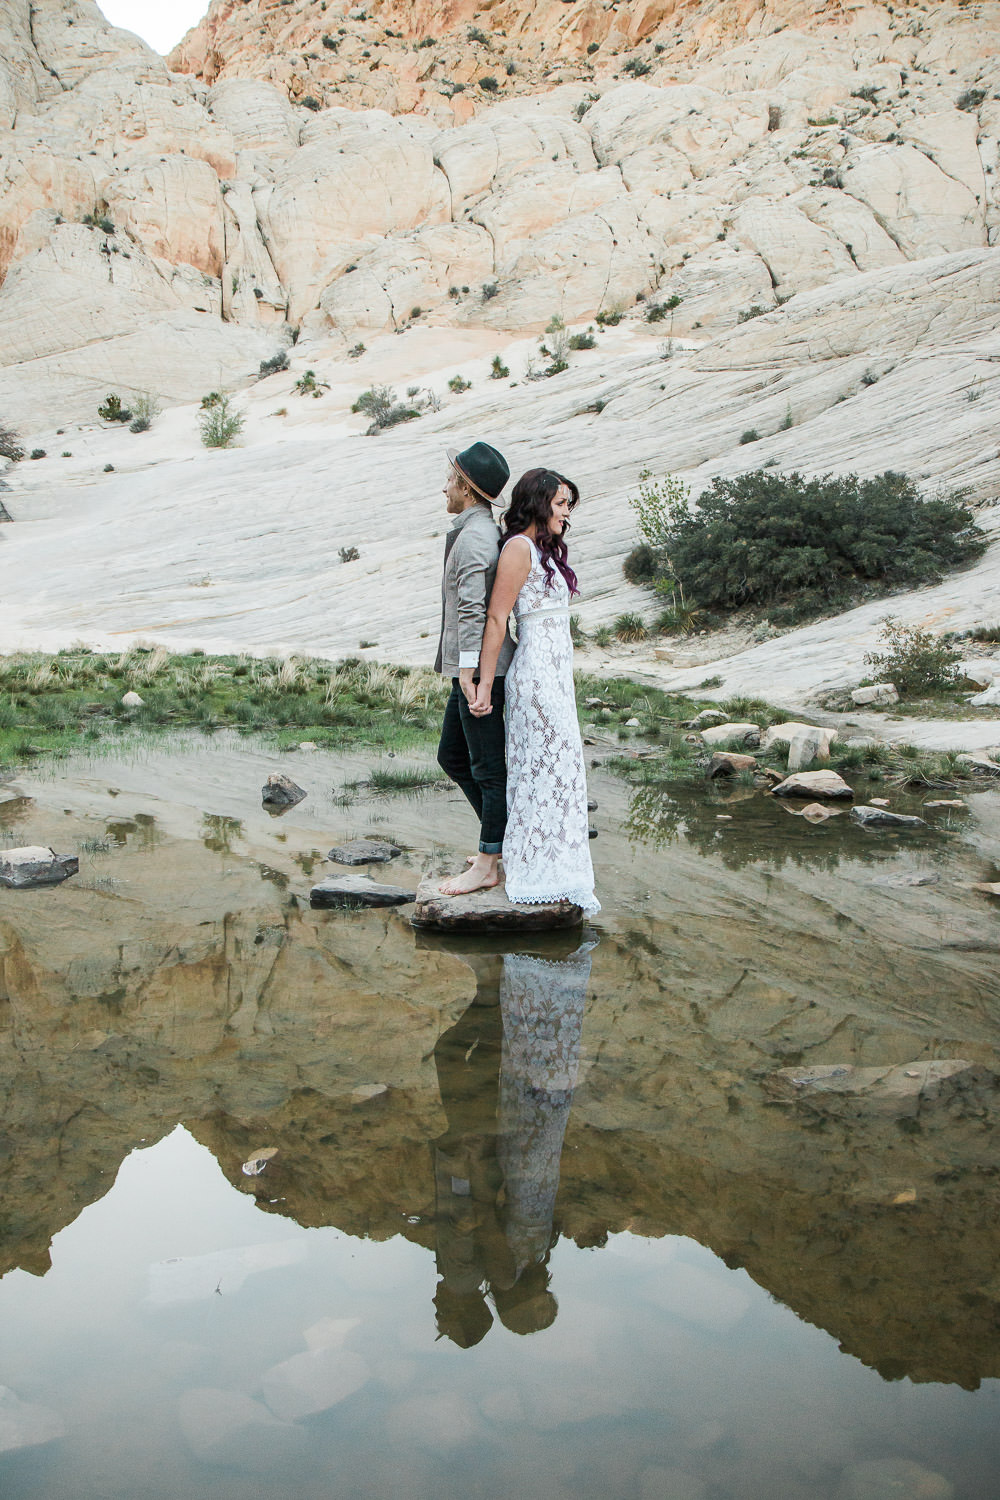 Desert oasis adventure wedding pictures Kyle Loves Tori Photography